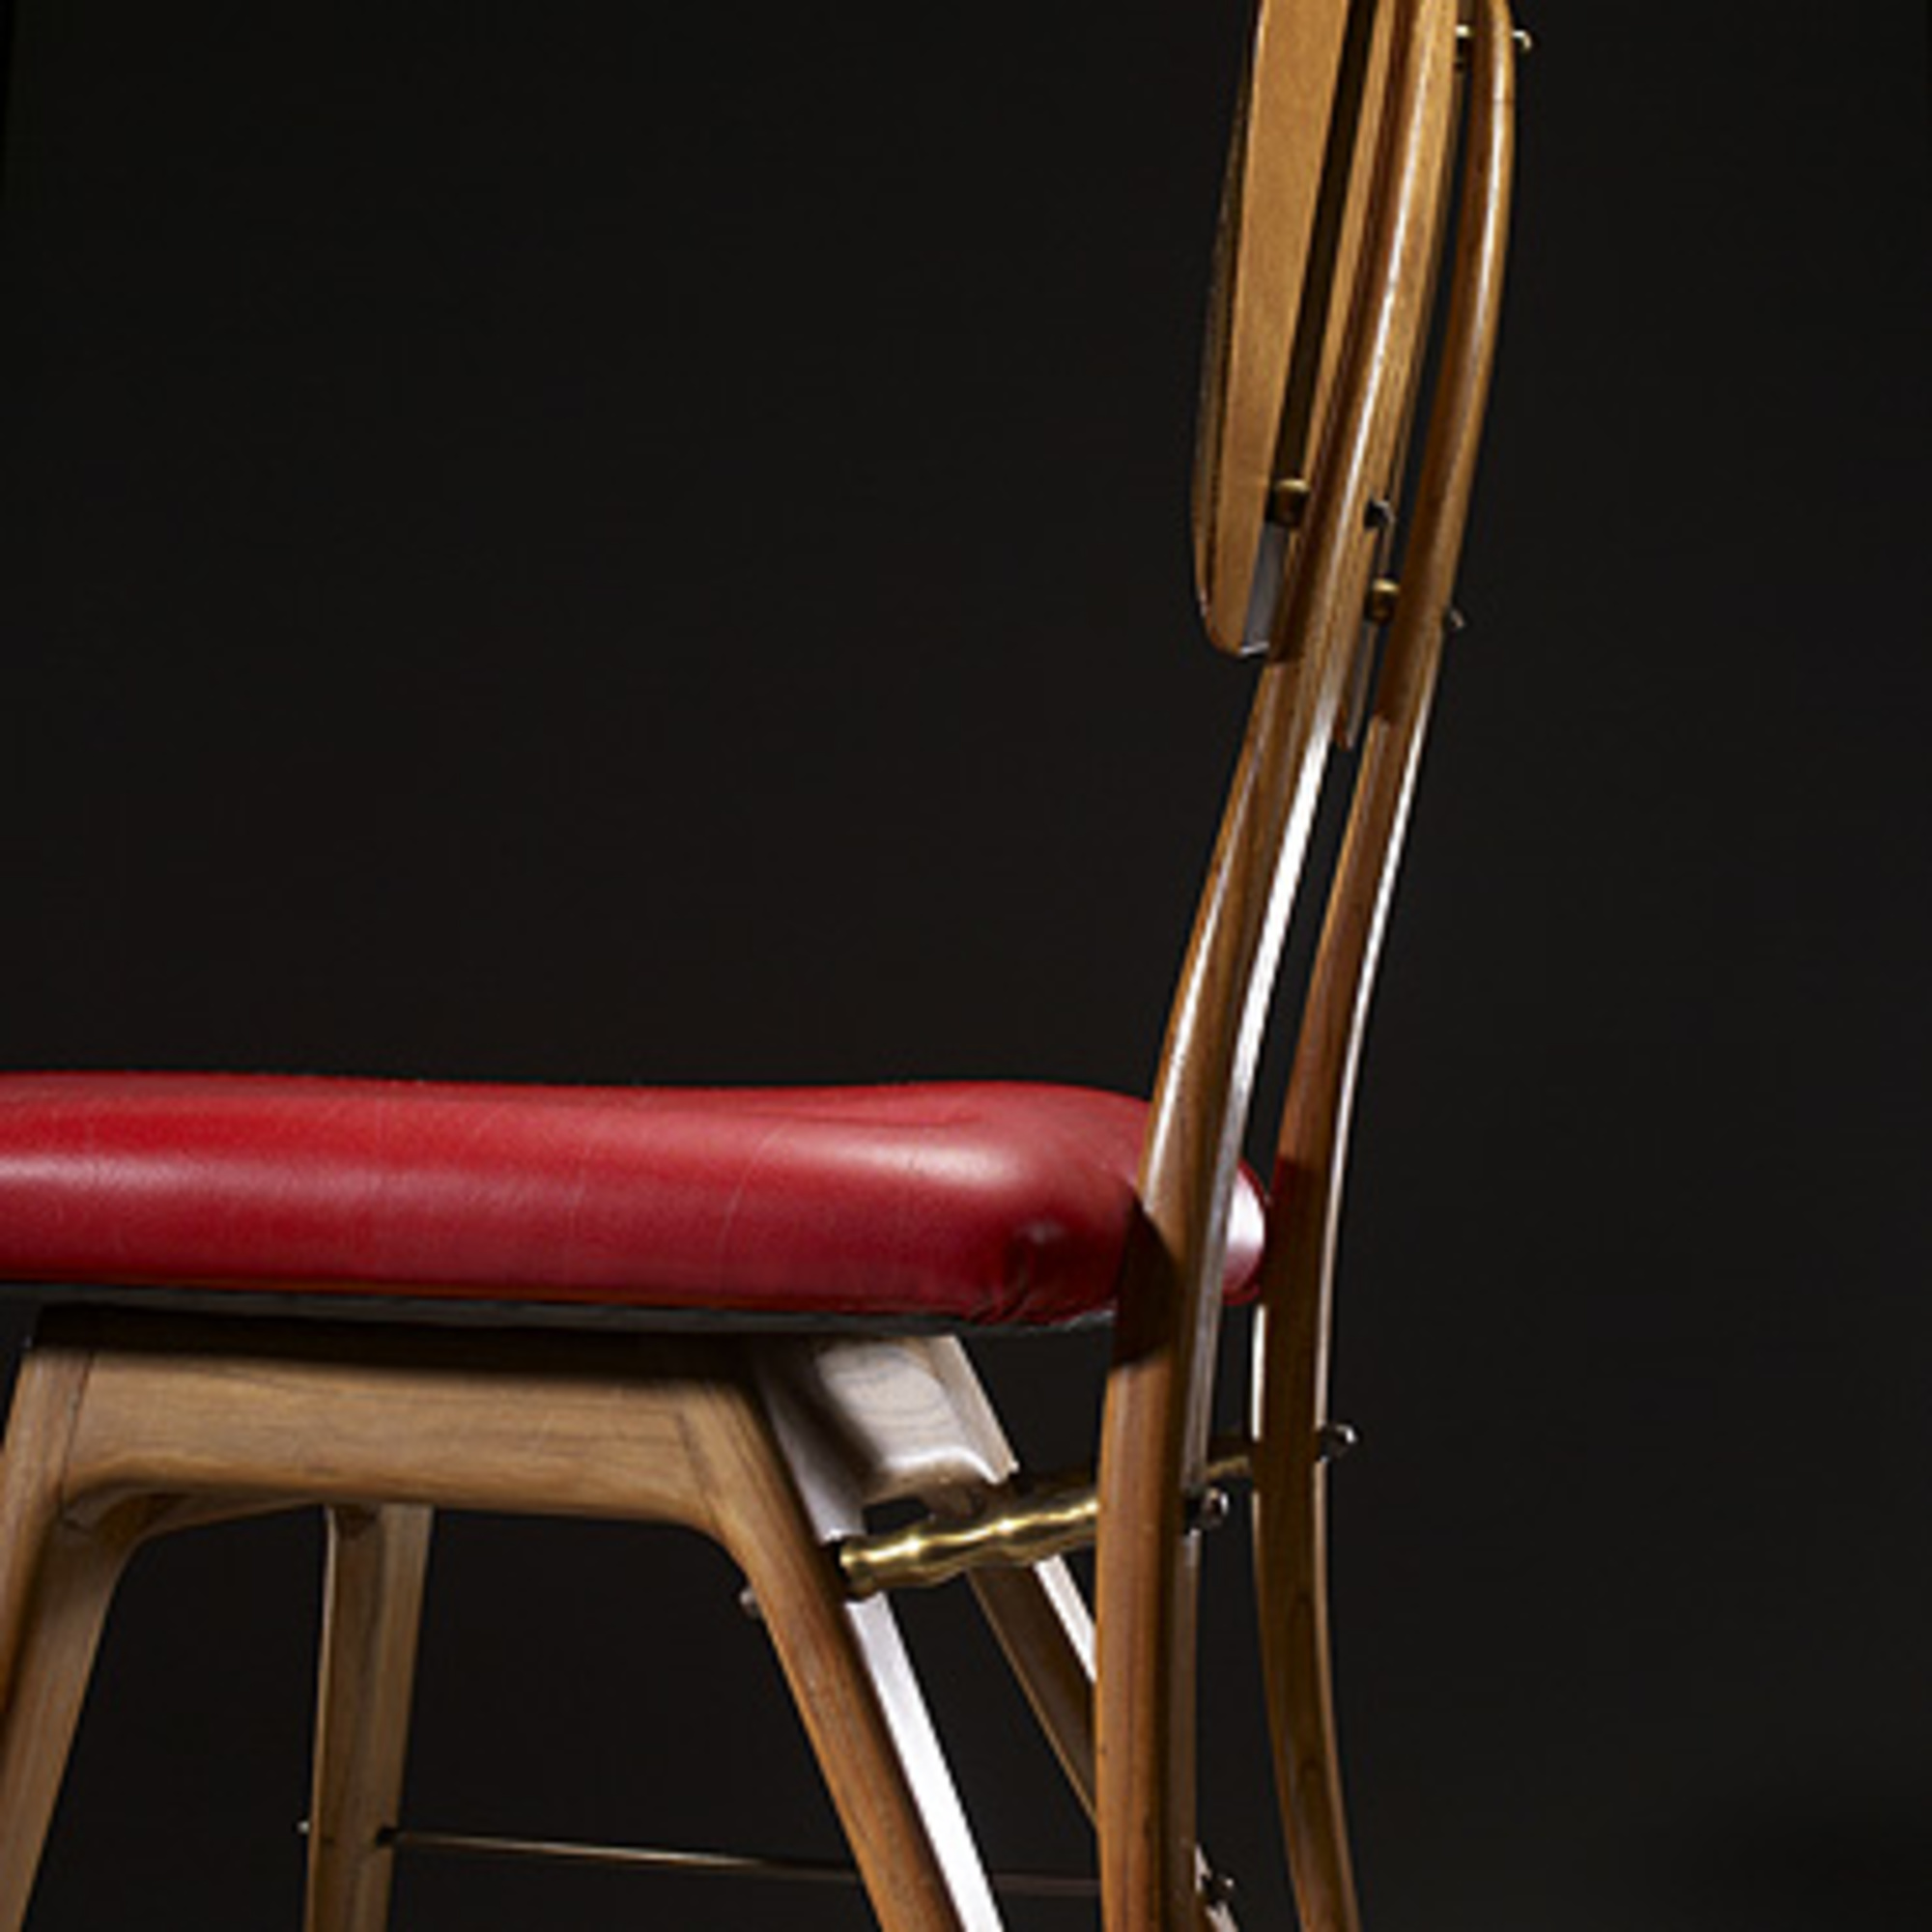 540 carlo mollino chair from the casa editrice lattes for Casa design torino